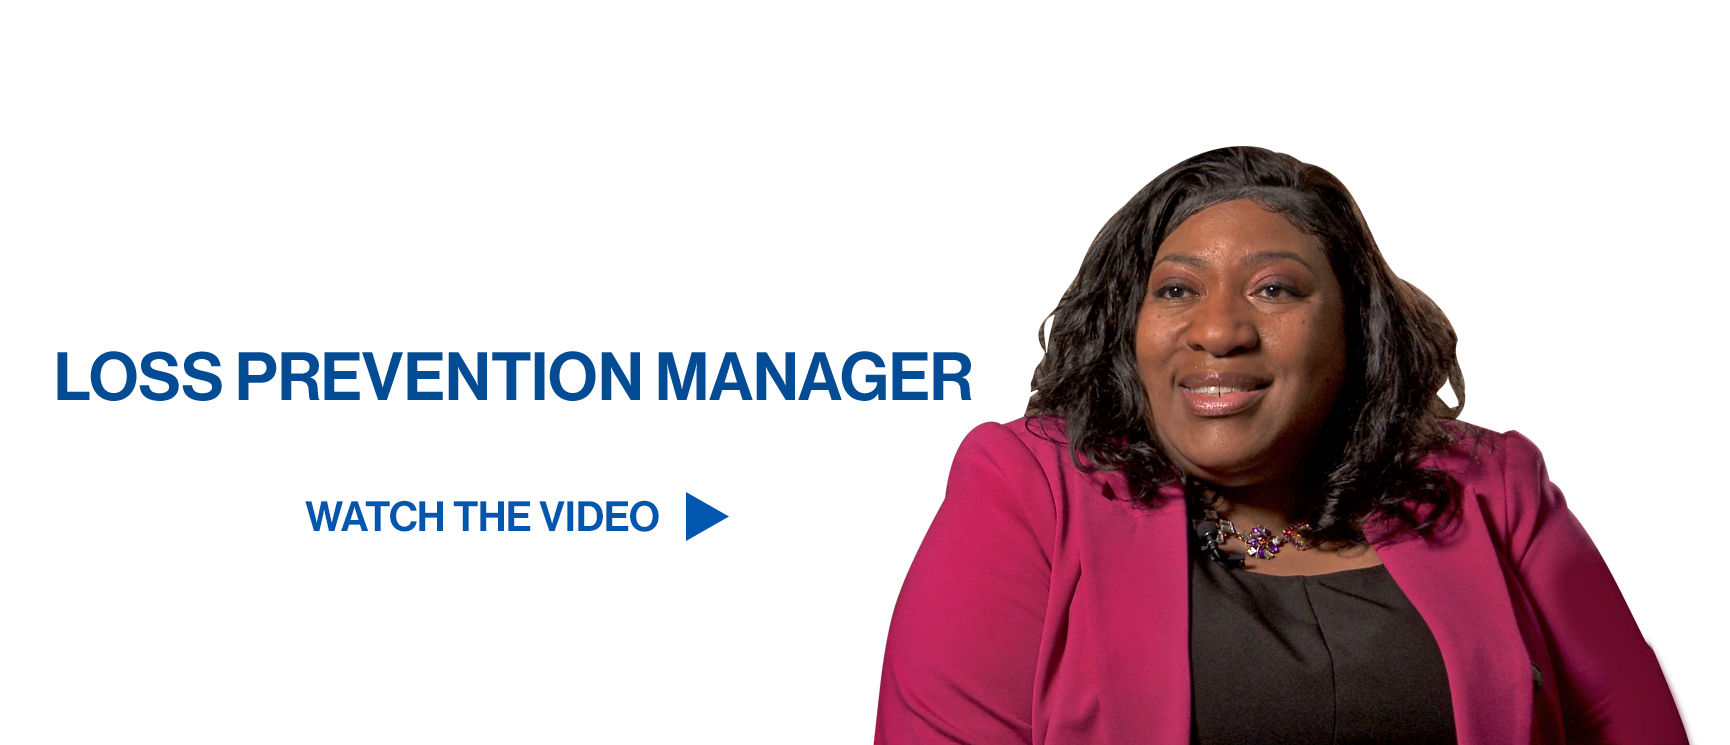 Employee Spotlight - Nikki Shelton-Moss